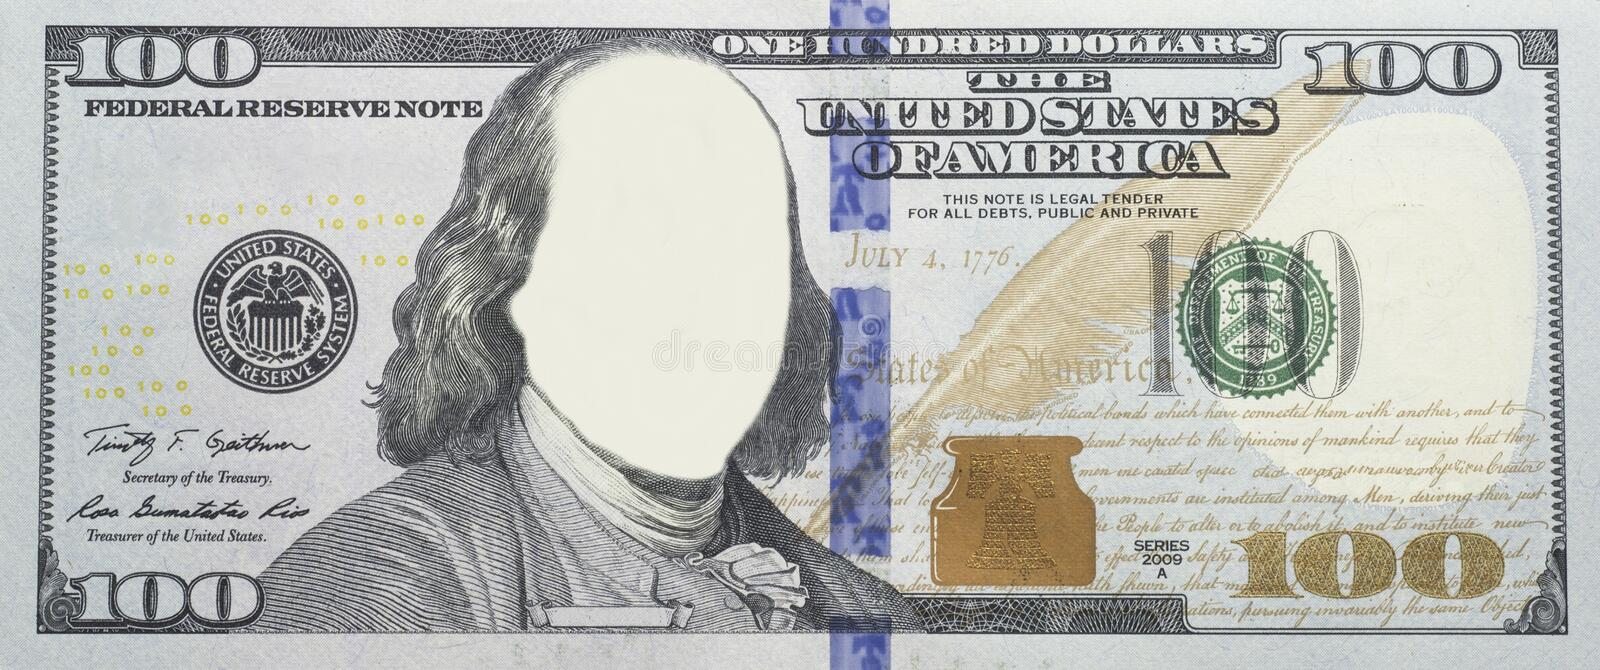 Faceless Clear $100 Bill stock photo. Image of money - 38292838